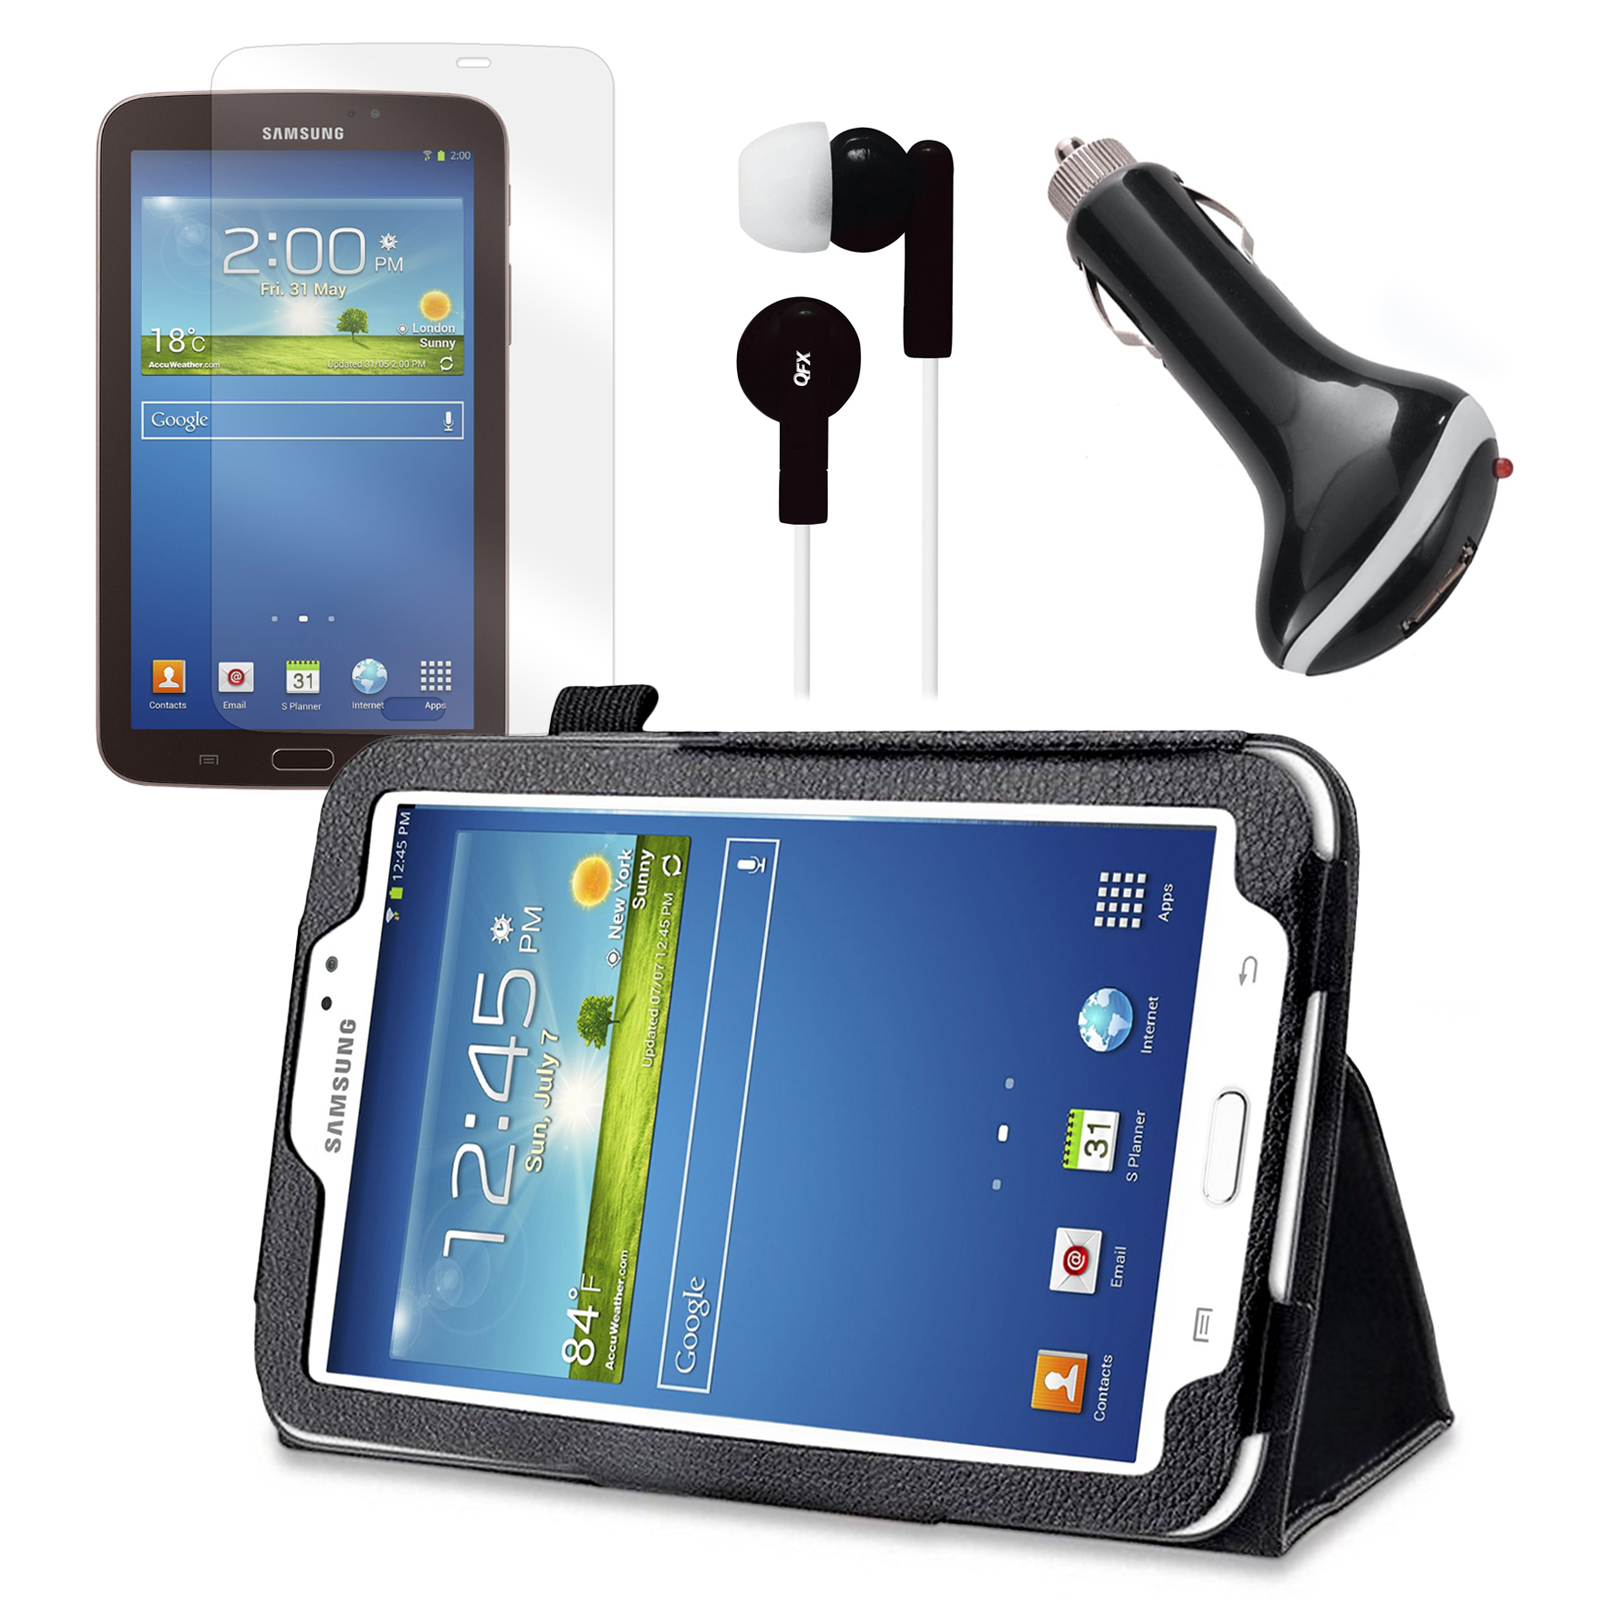 "Black Folio Case with Earphones, Screen Protector, and Car Charger for Samsung Galaxy Tab 3 7"" Tablet"